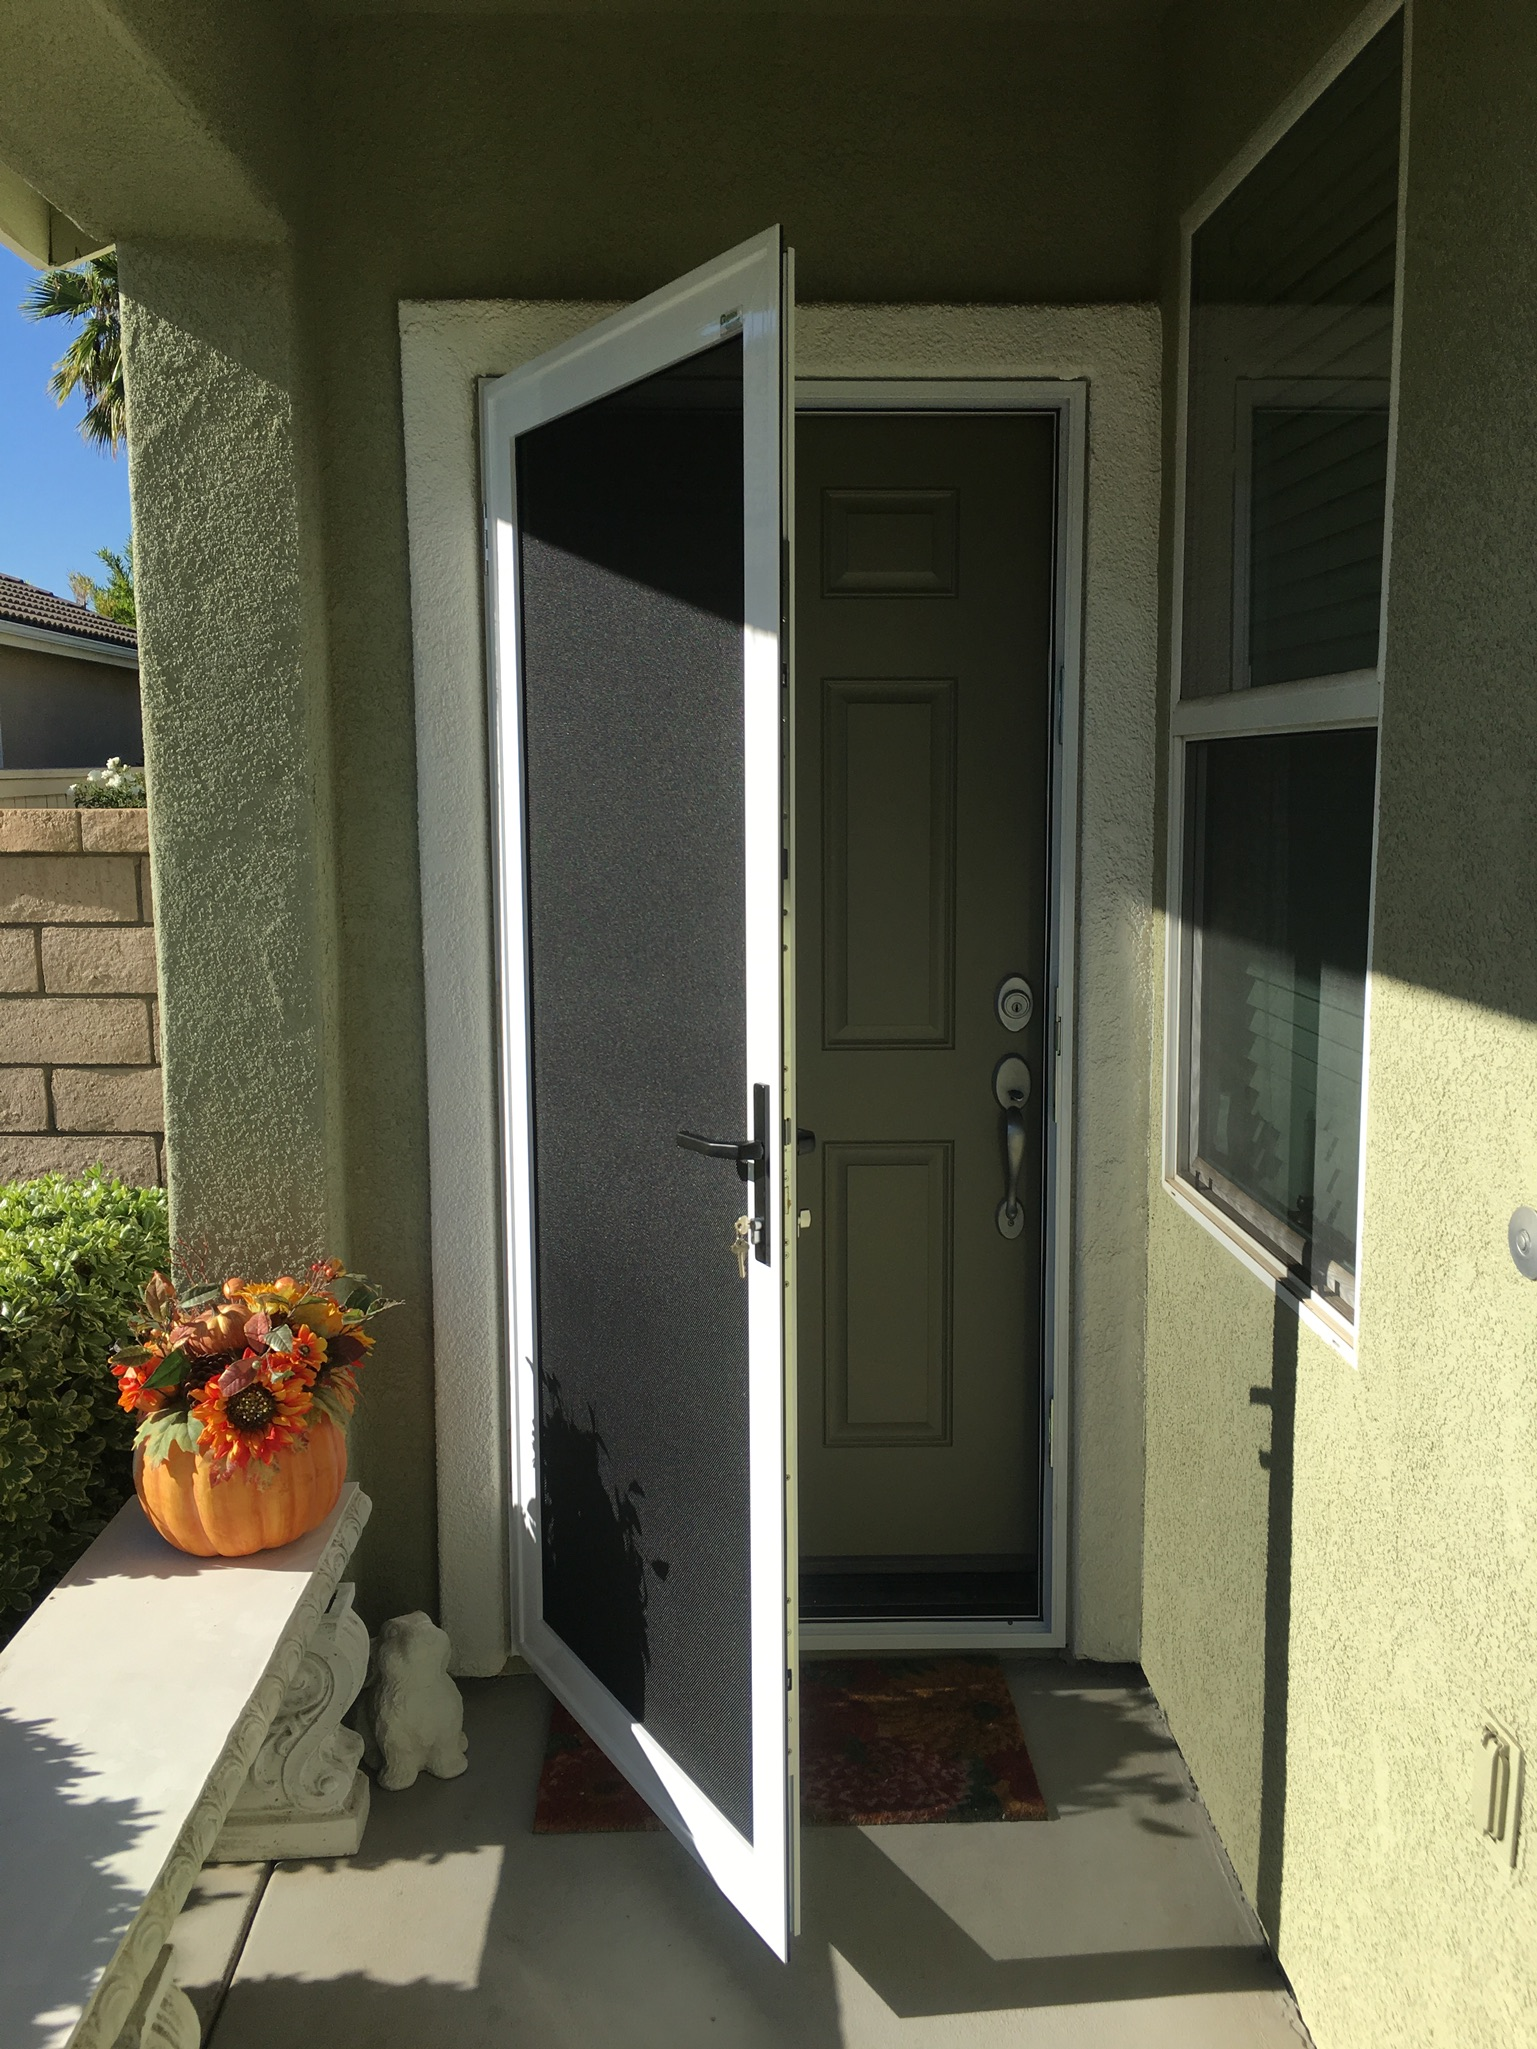 White Guarda premium security screen door installed in Ryland Oasis, Menifee 11/17/16 - 2